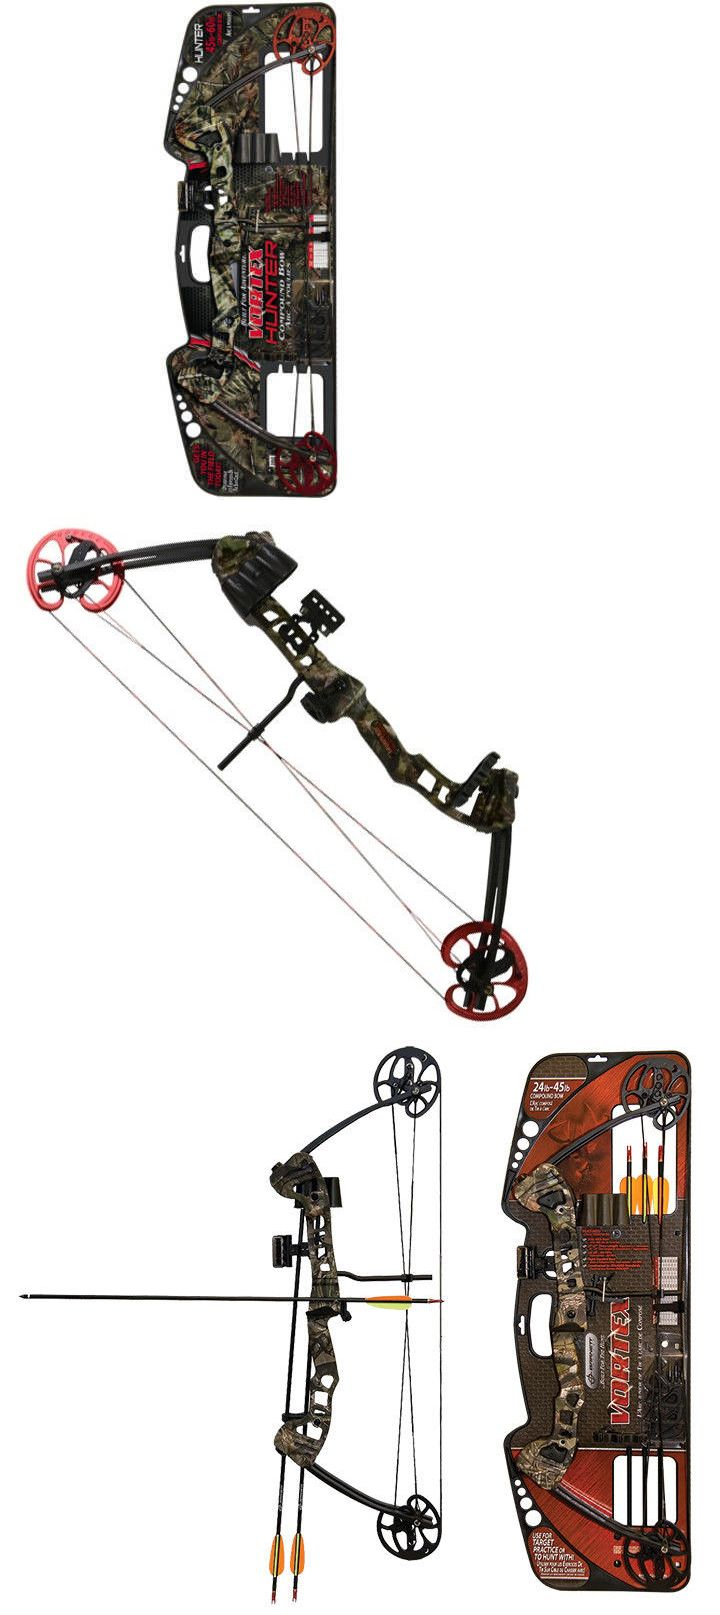 Compound 20838: Barnett Vortex Hunter Compound Bow Young Hunting Archer Aluminum Riser New!!! -> BUY IT NOW ONLY: $81.9 on eBay!